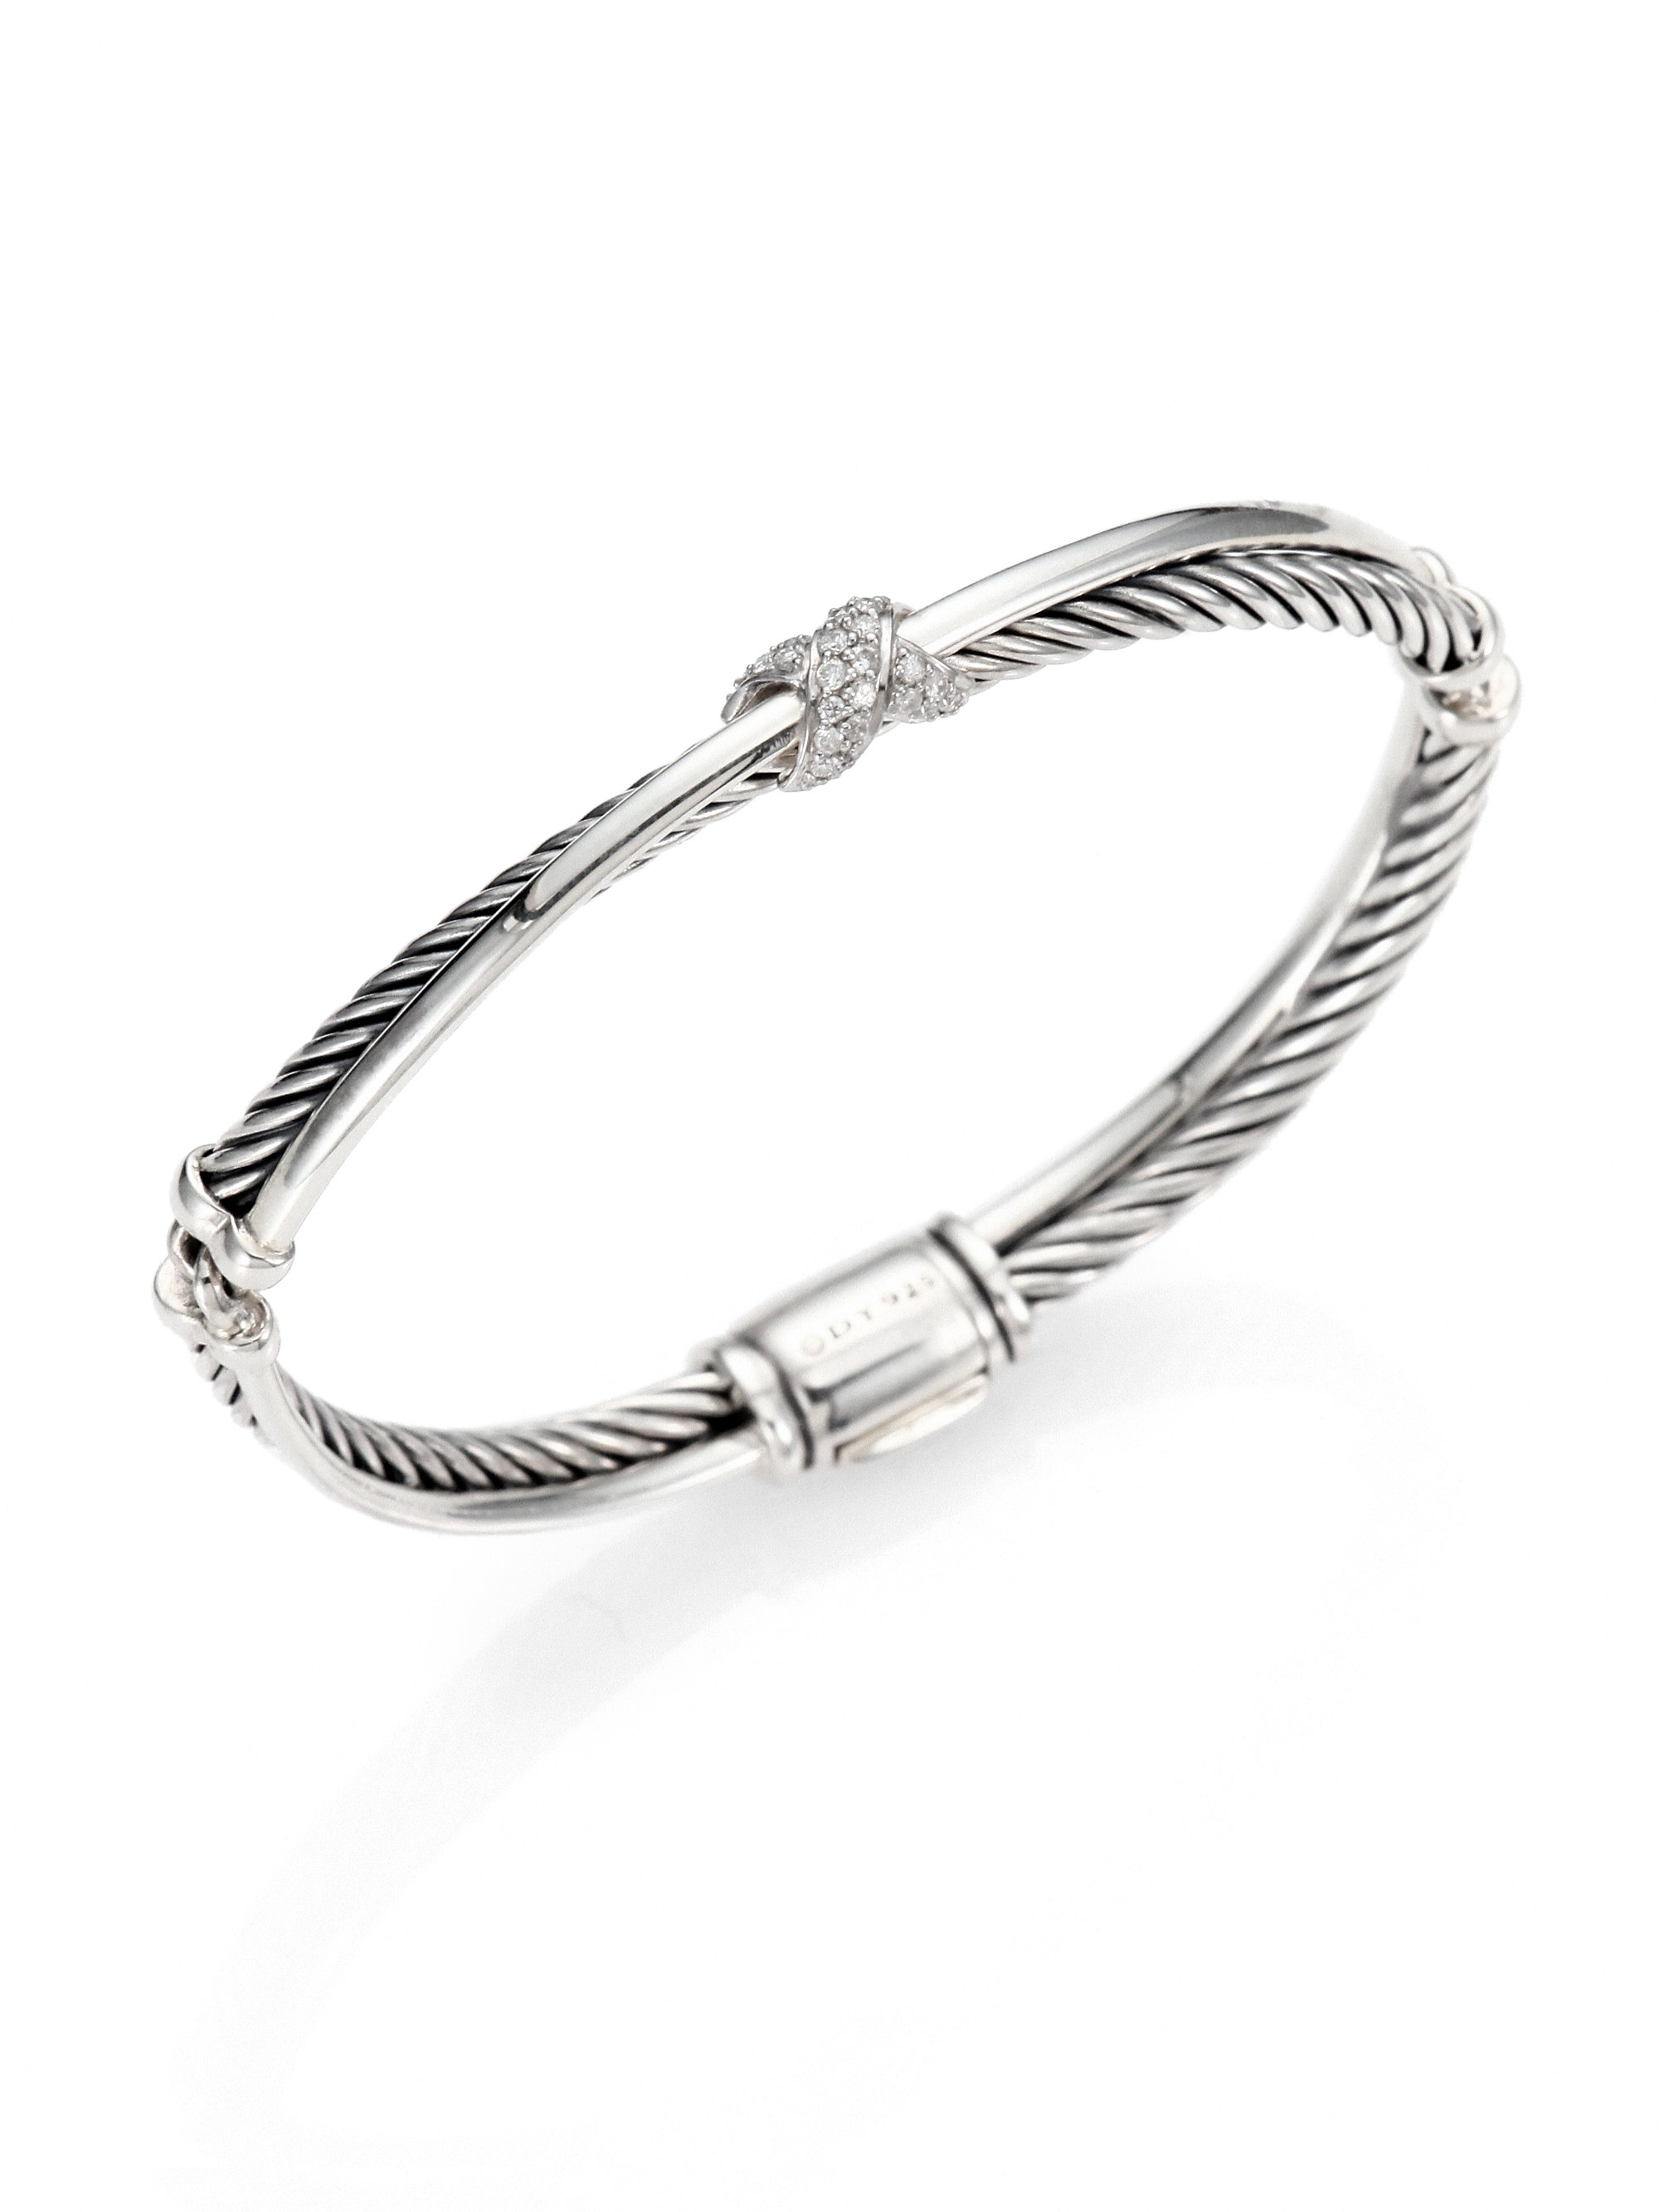 David yurman diamond sterling silver bangle bracelet in for David yurman like bracelets